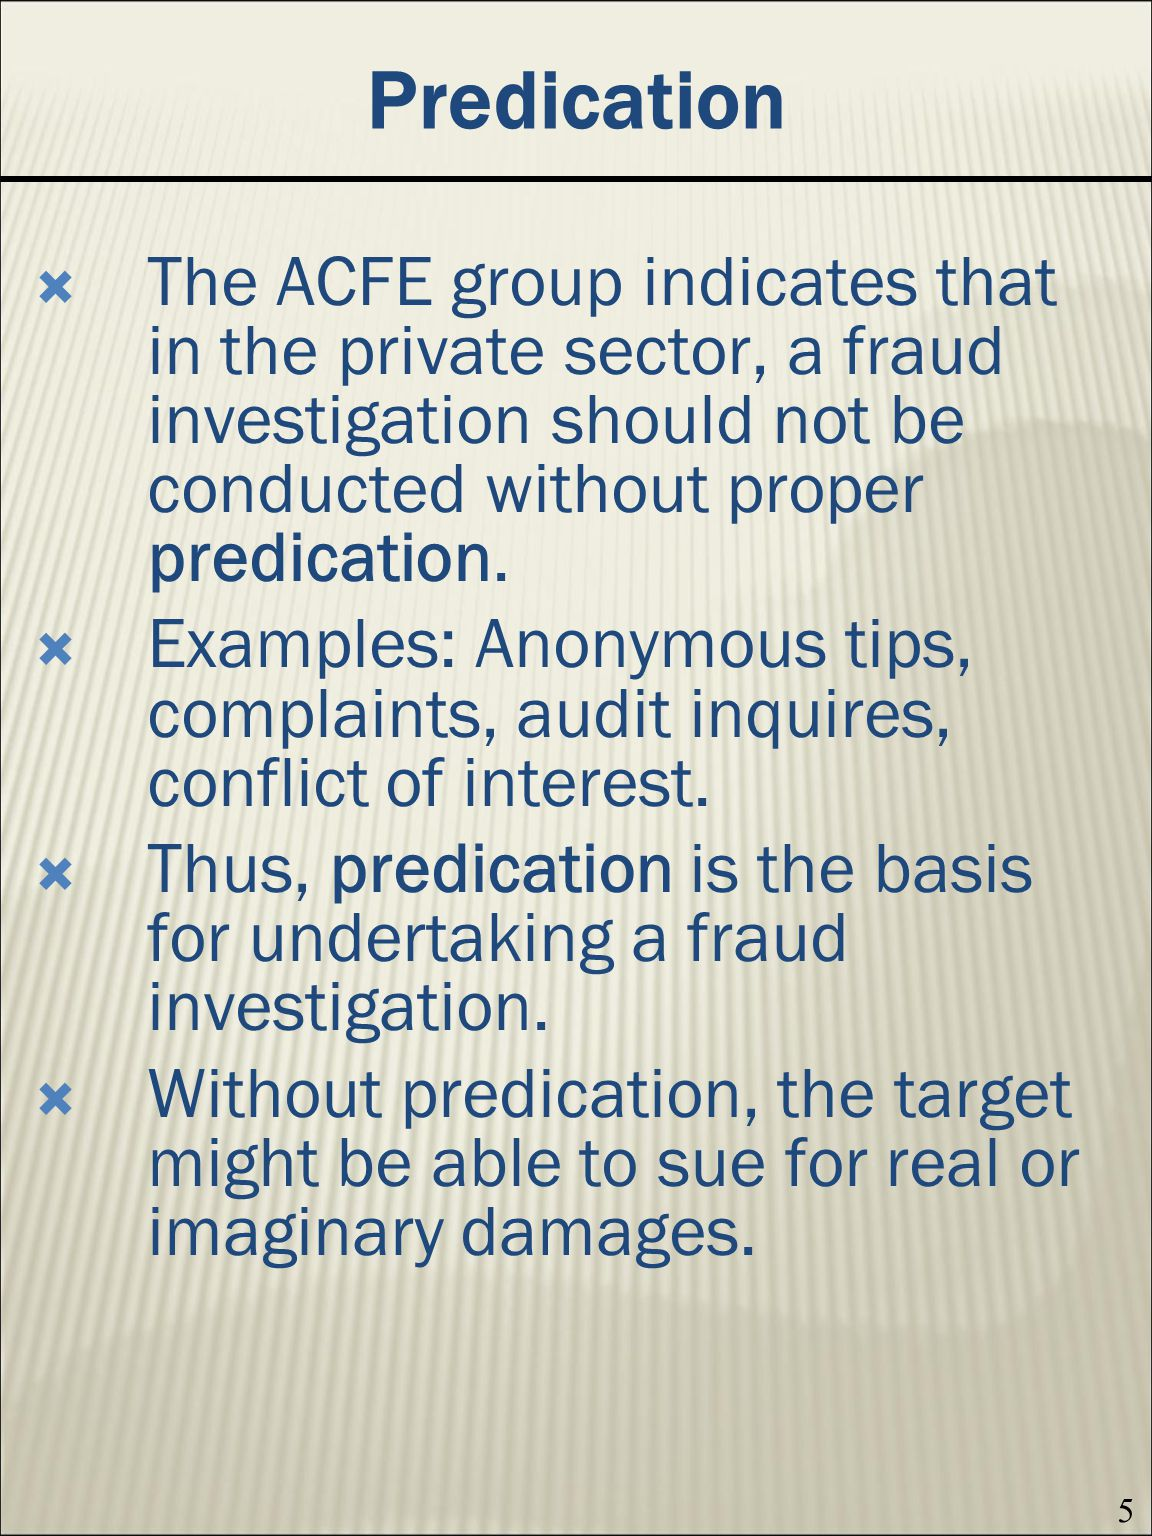 5 Predication The ACFE group indicates that in the private sector, a fraud investigation should not be conducted without proper predication.